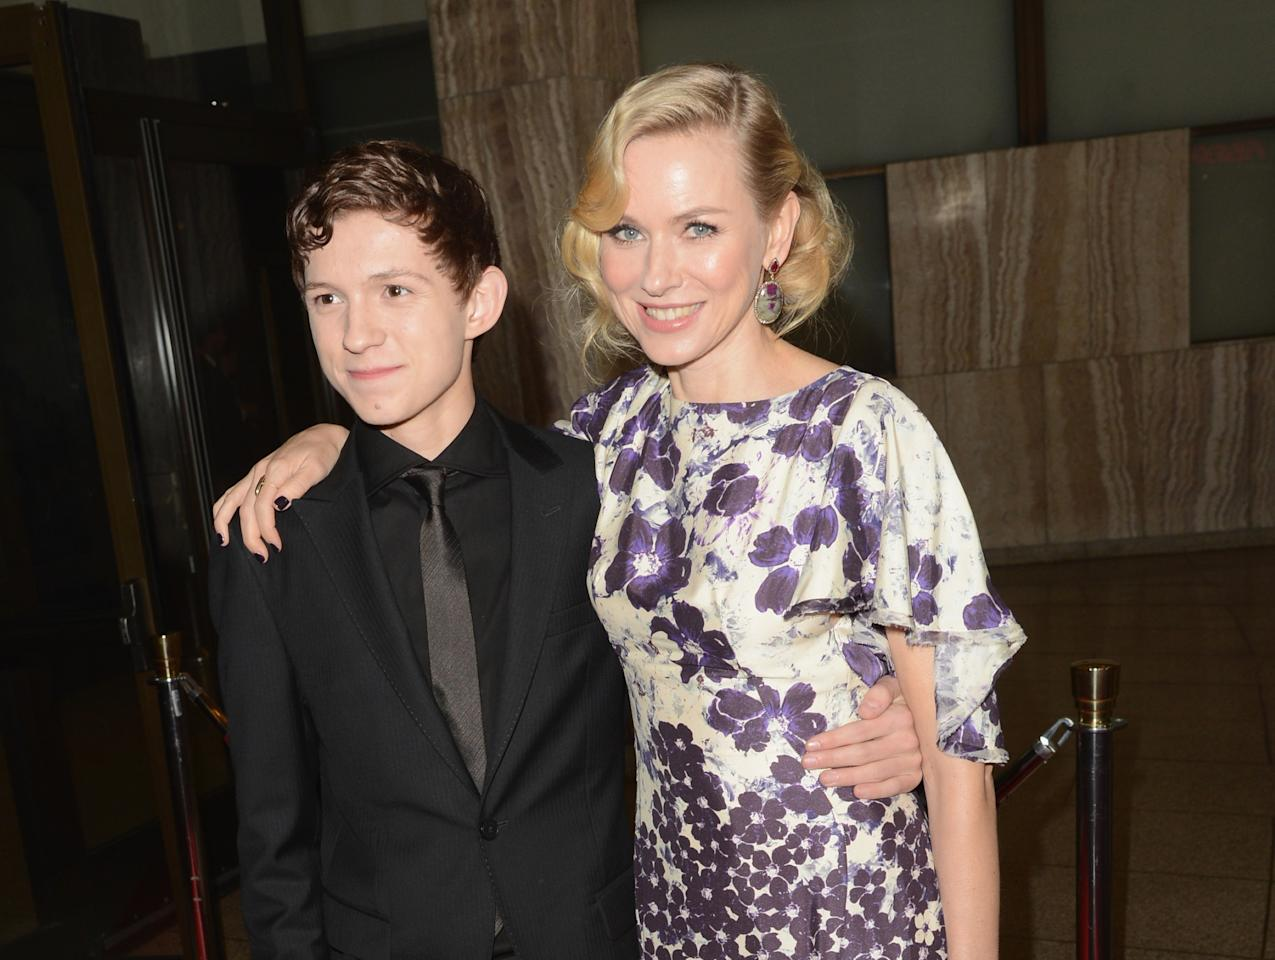 """HOLLYWOOD, CA - DECEMBER 10:  Actor Tom Holland (L) and Naomi Watts attend the Los Angeles premiere of Summit Entertainment's """"The Impossible"""" at ArcLight Cinemas Cinerama Dome on December 10, 2012 in Hollywood, California.  (Photo by Jason Merritt/Getty Images)"""